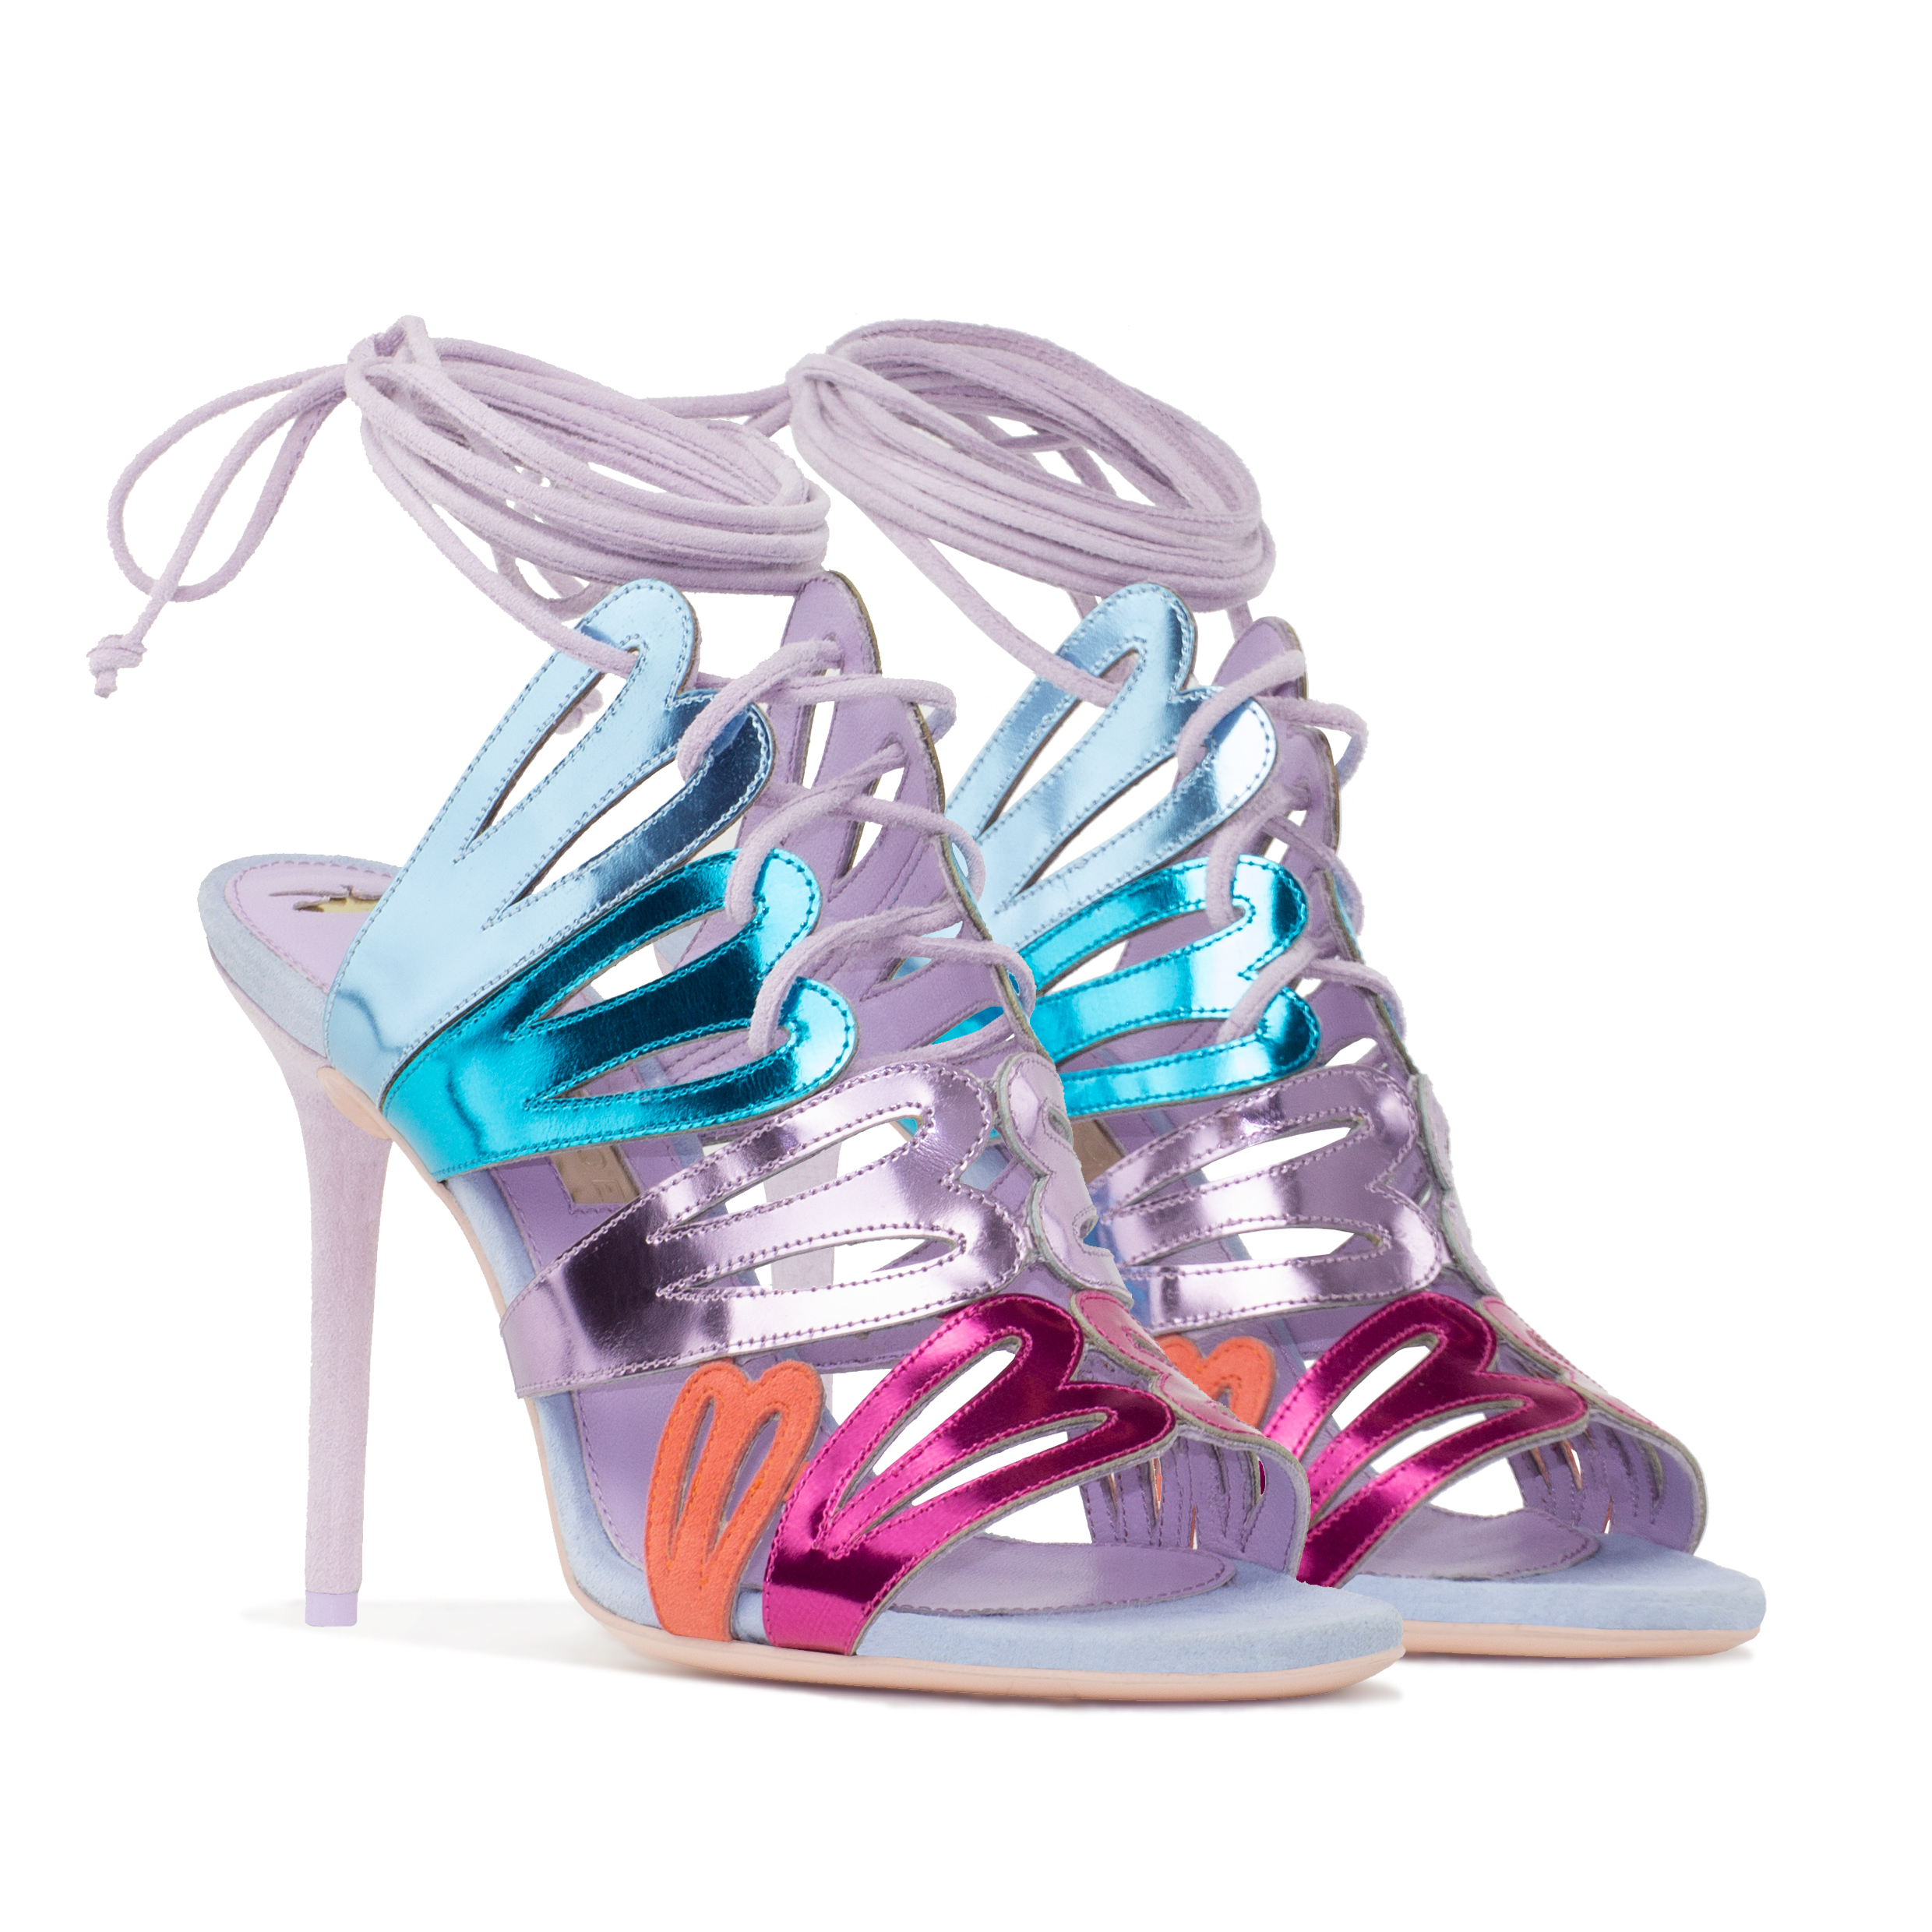 SHOES THAT TAKE YOU GOOD PLACES - INSPIRED BY THE MAGICAL TROPICAL ISLAND OF ISCHIA, ITALY